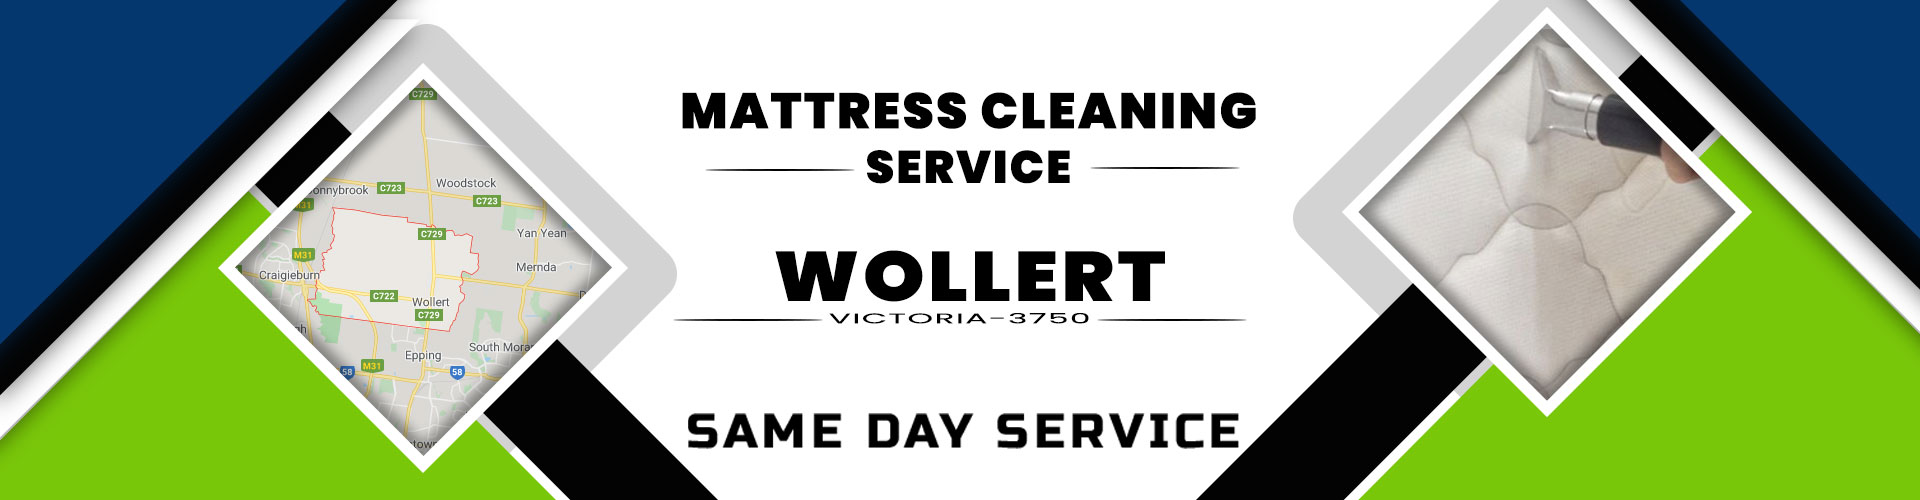 Mattress Cleaning Wollert